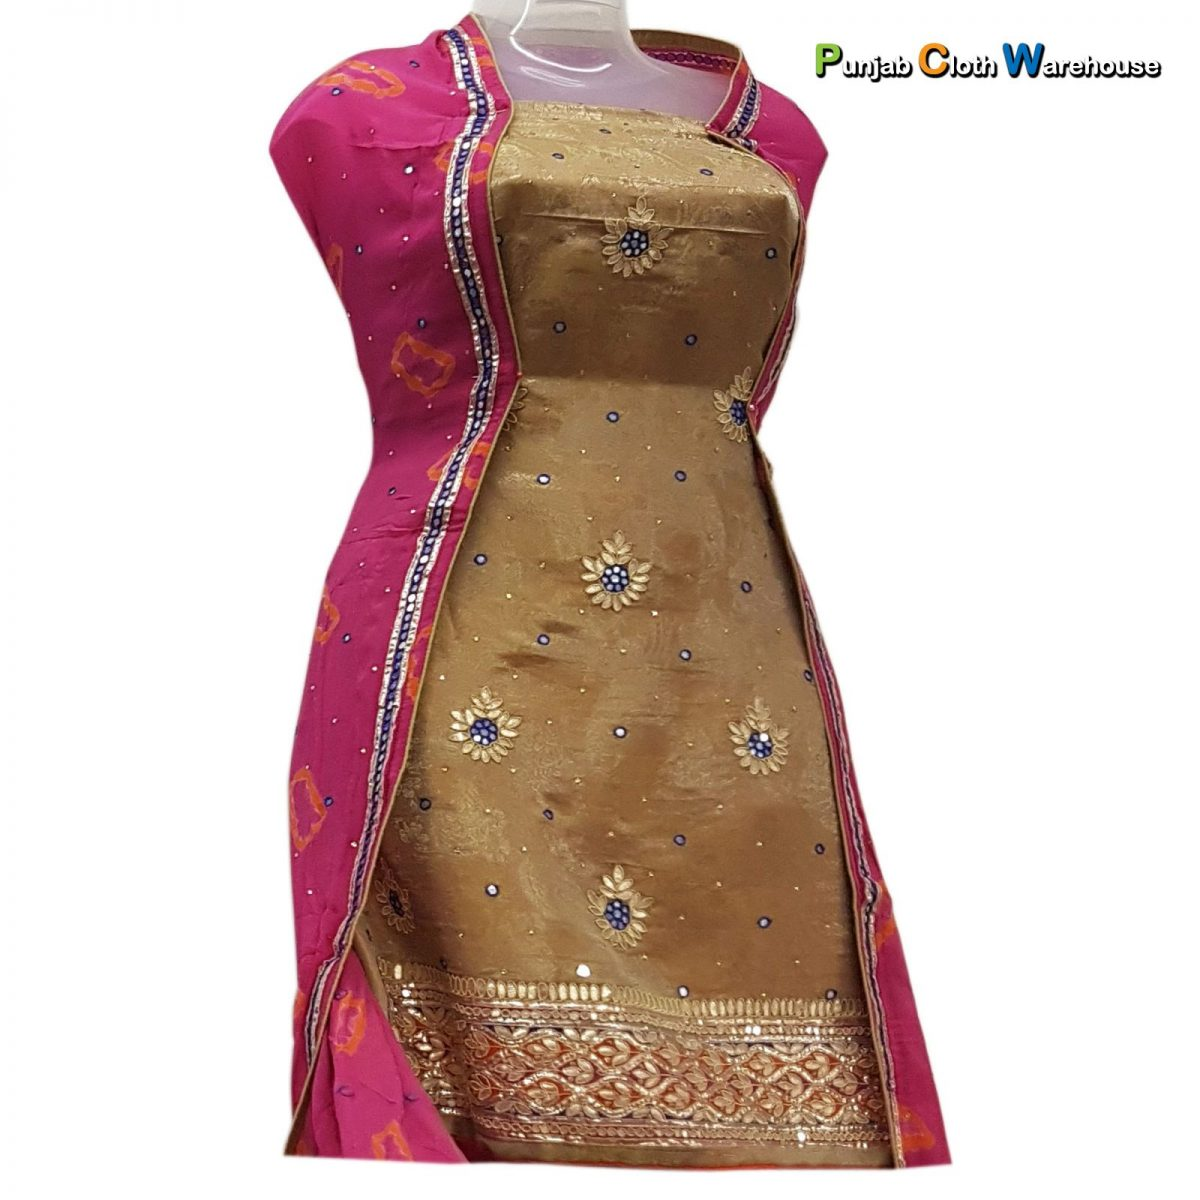 Ladies Suits - Cut Piece - Punjab Cloth Warehouse, Surrey (5)